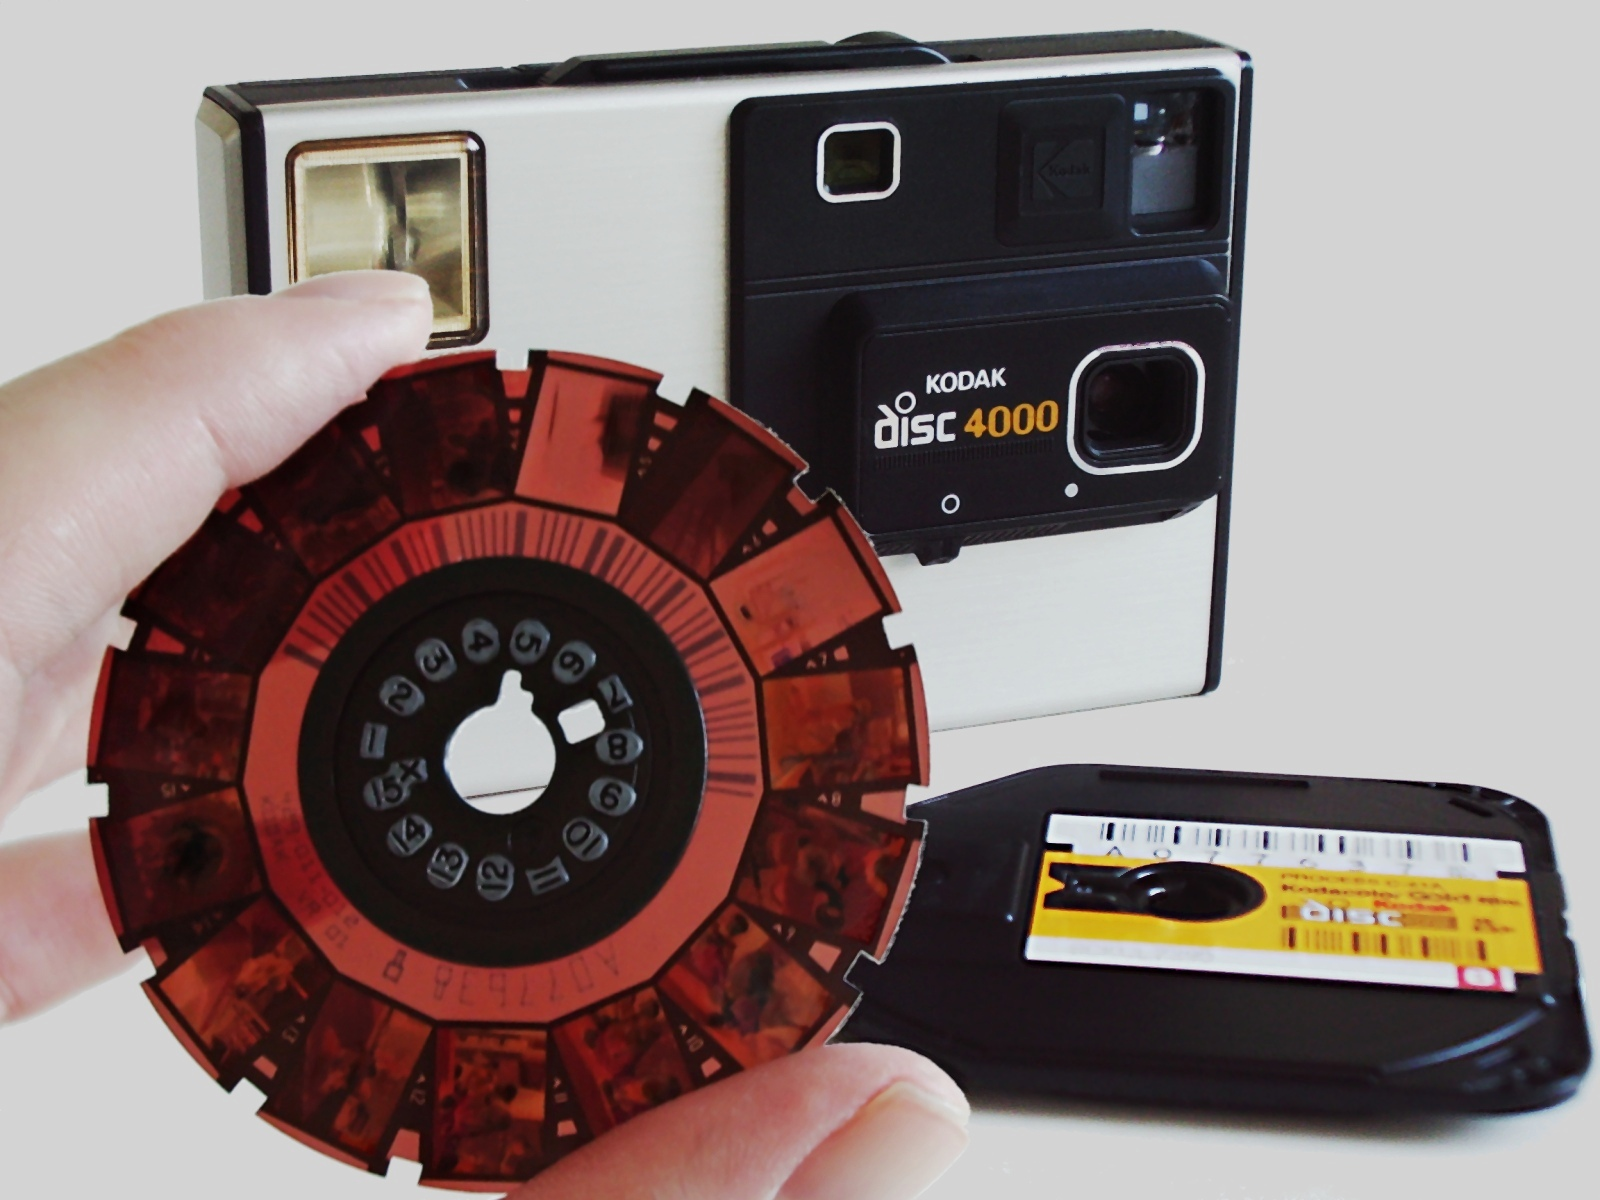 Camera_Kodak_Disc_4000_with_disc_film.jpg